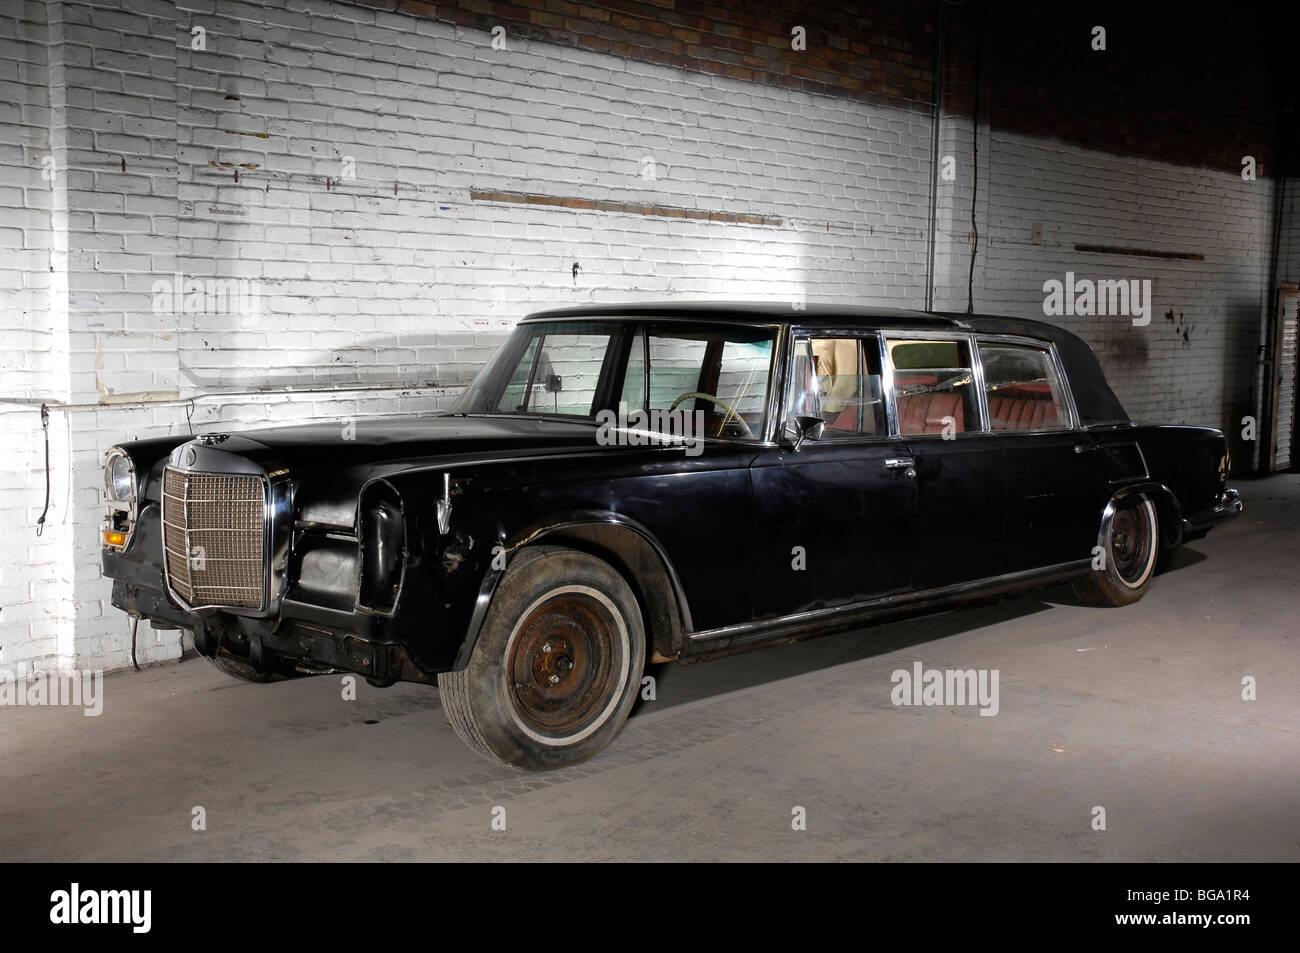 mercedes benz 600 pullman 1969 stock photo 27265816 alamy. Black Bedroom Furniture Sets. Home Design Ideas